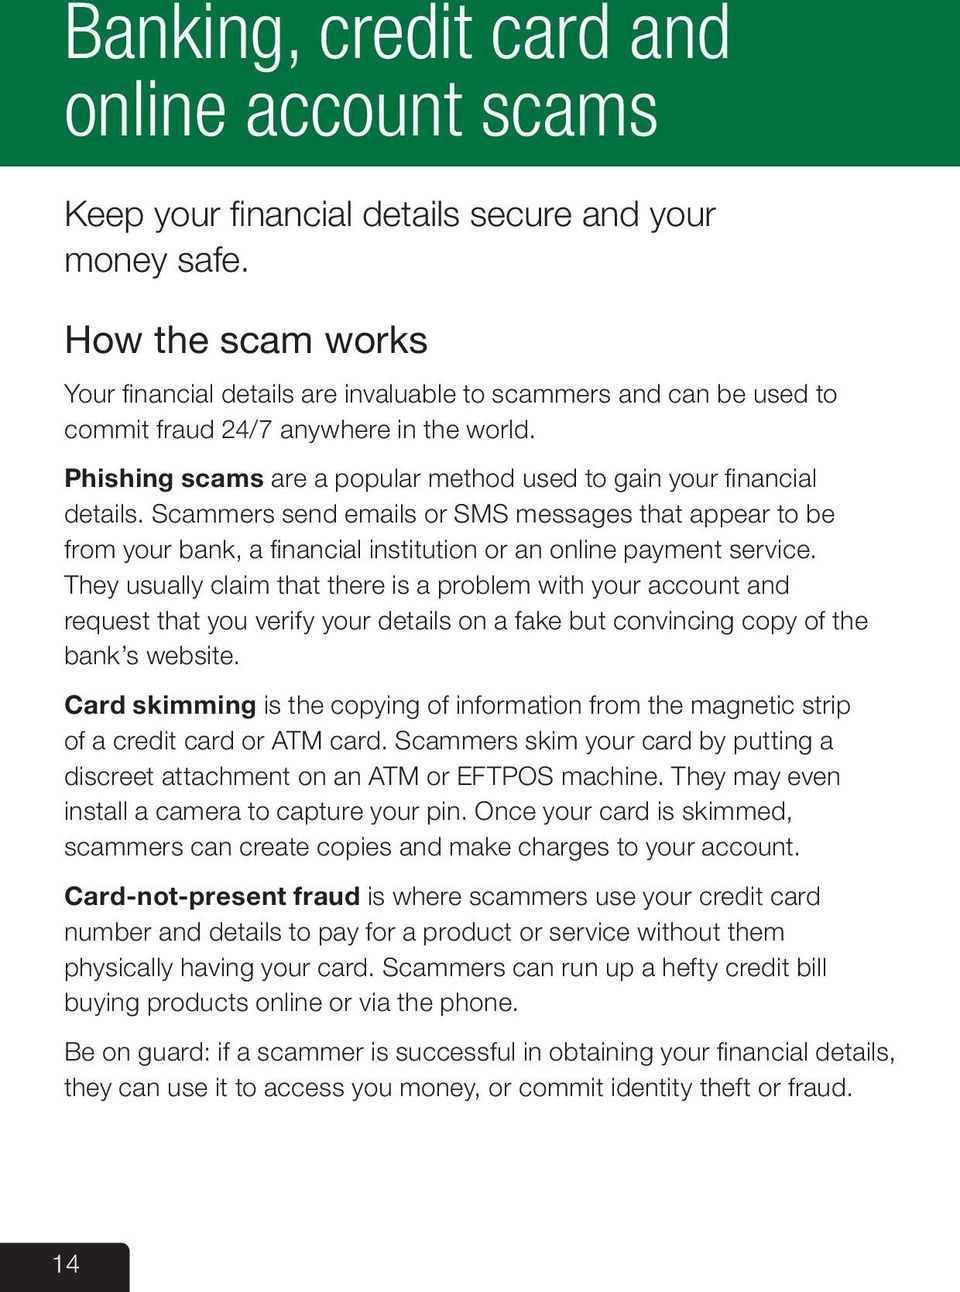 Phishing scams are a popular method used to gain your financial details. Scammers send emails or SMS messages that appear to be from your bank, a financial institution or an online payment service.